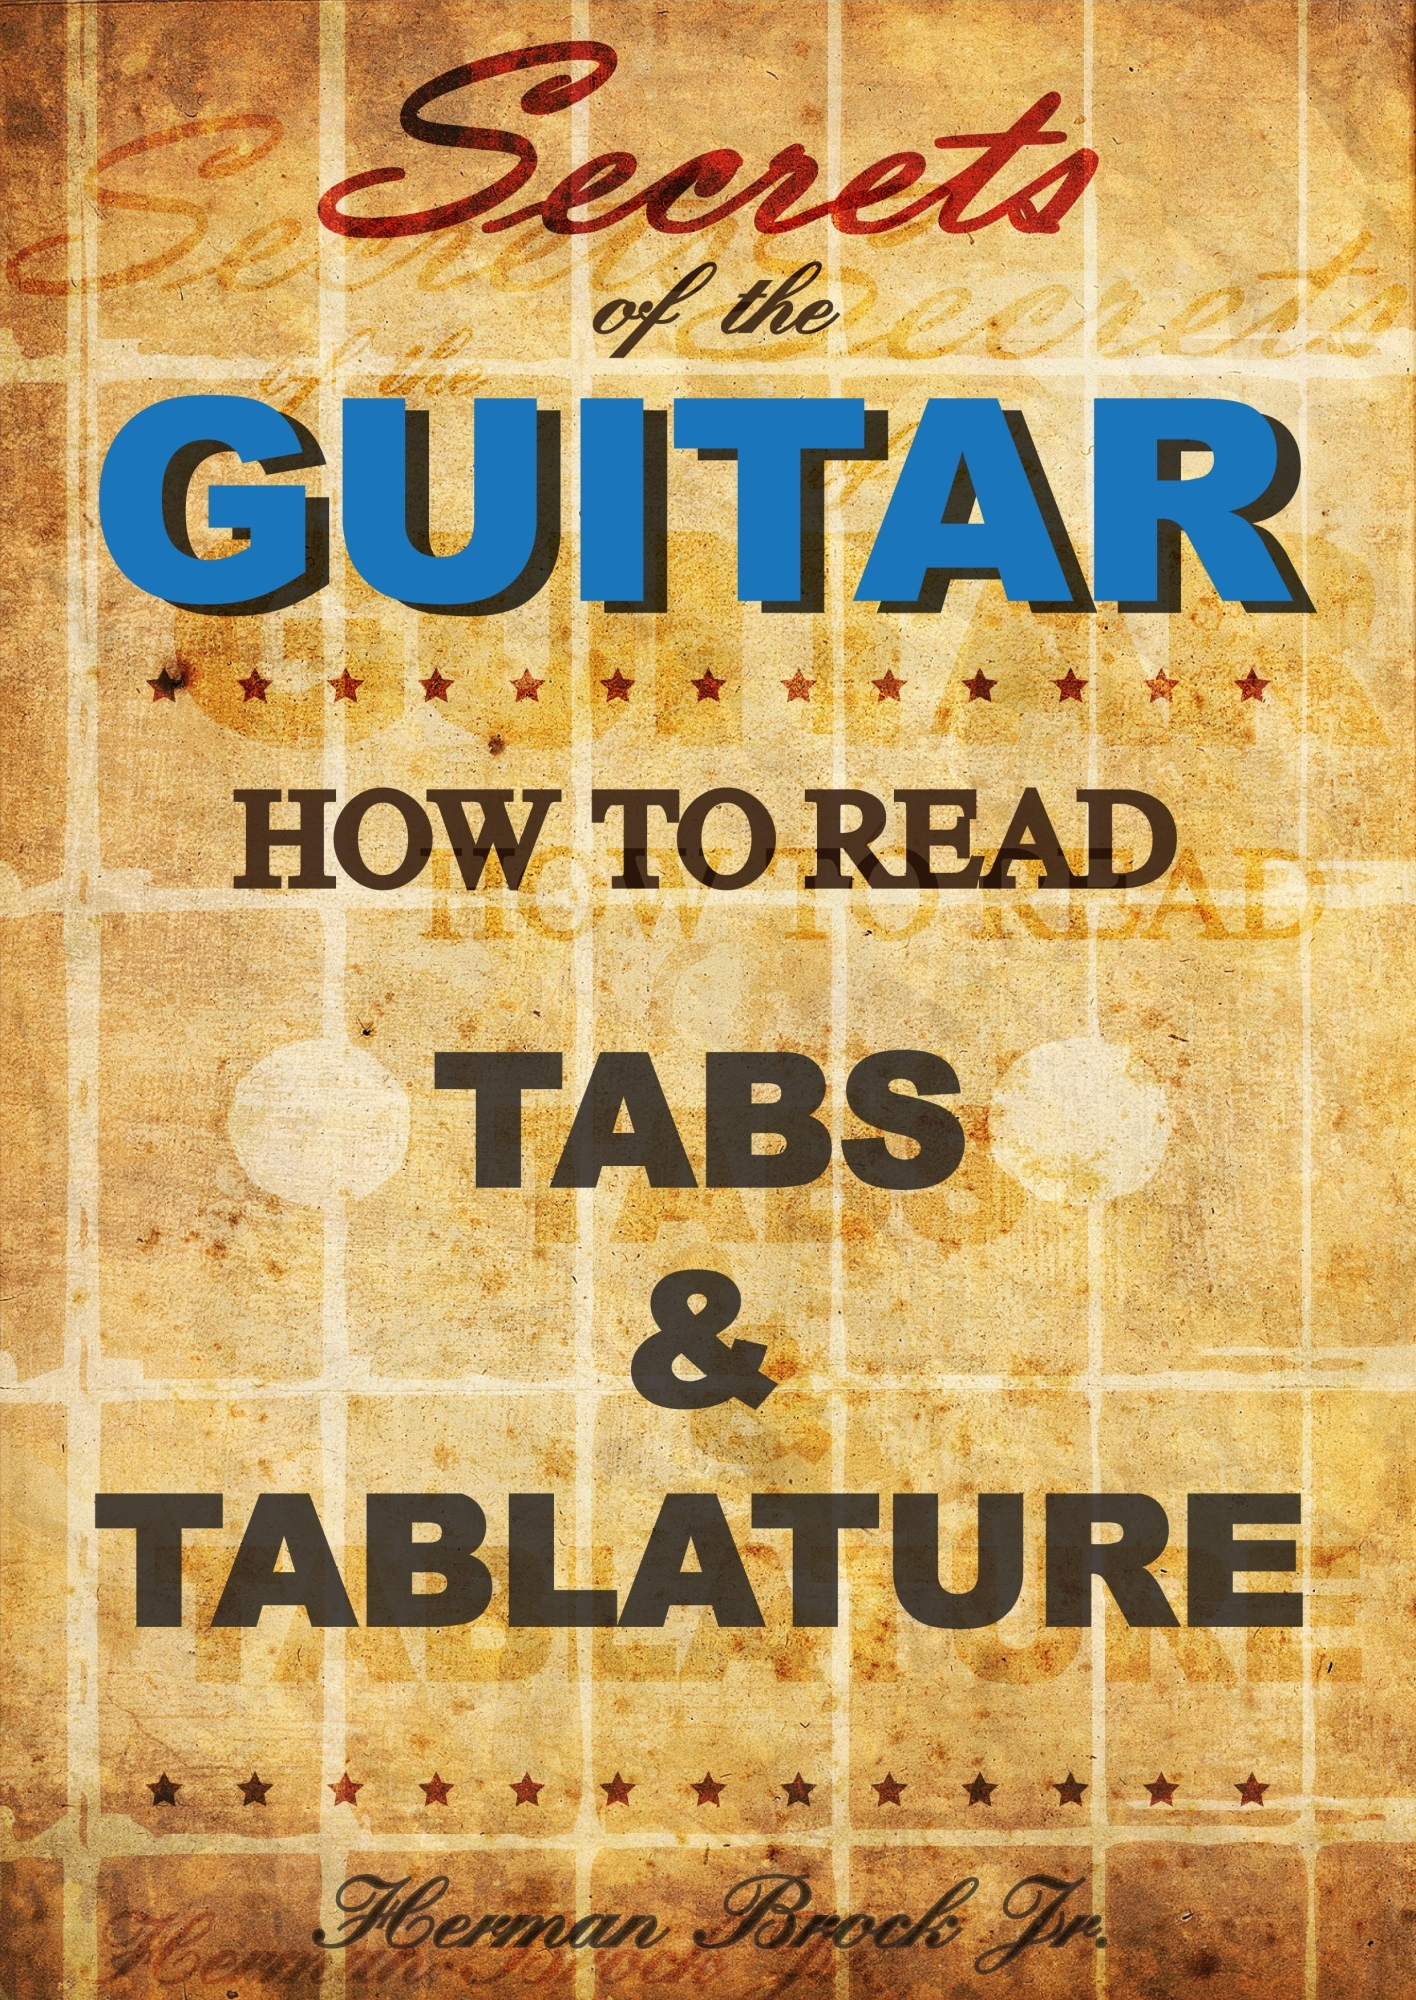 Secrets of the Guitar: How to read tabs and tablature